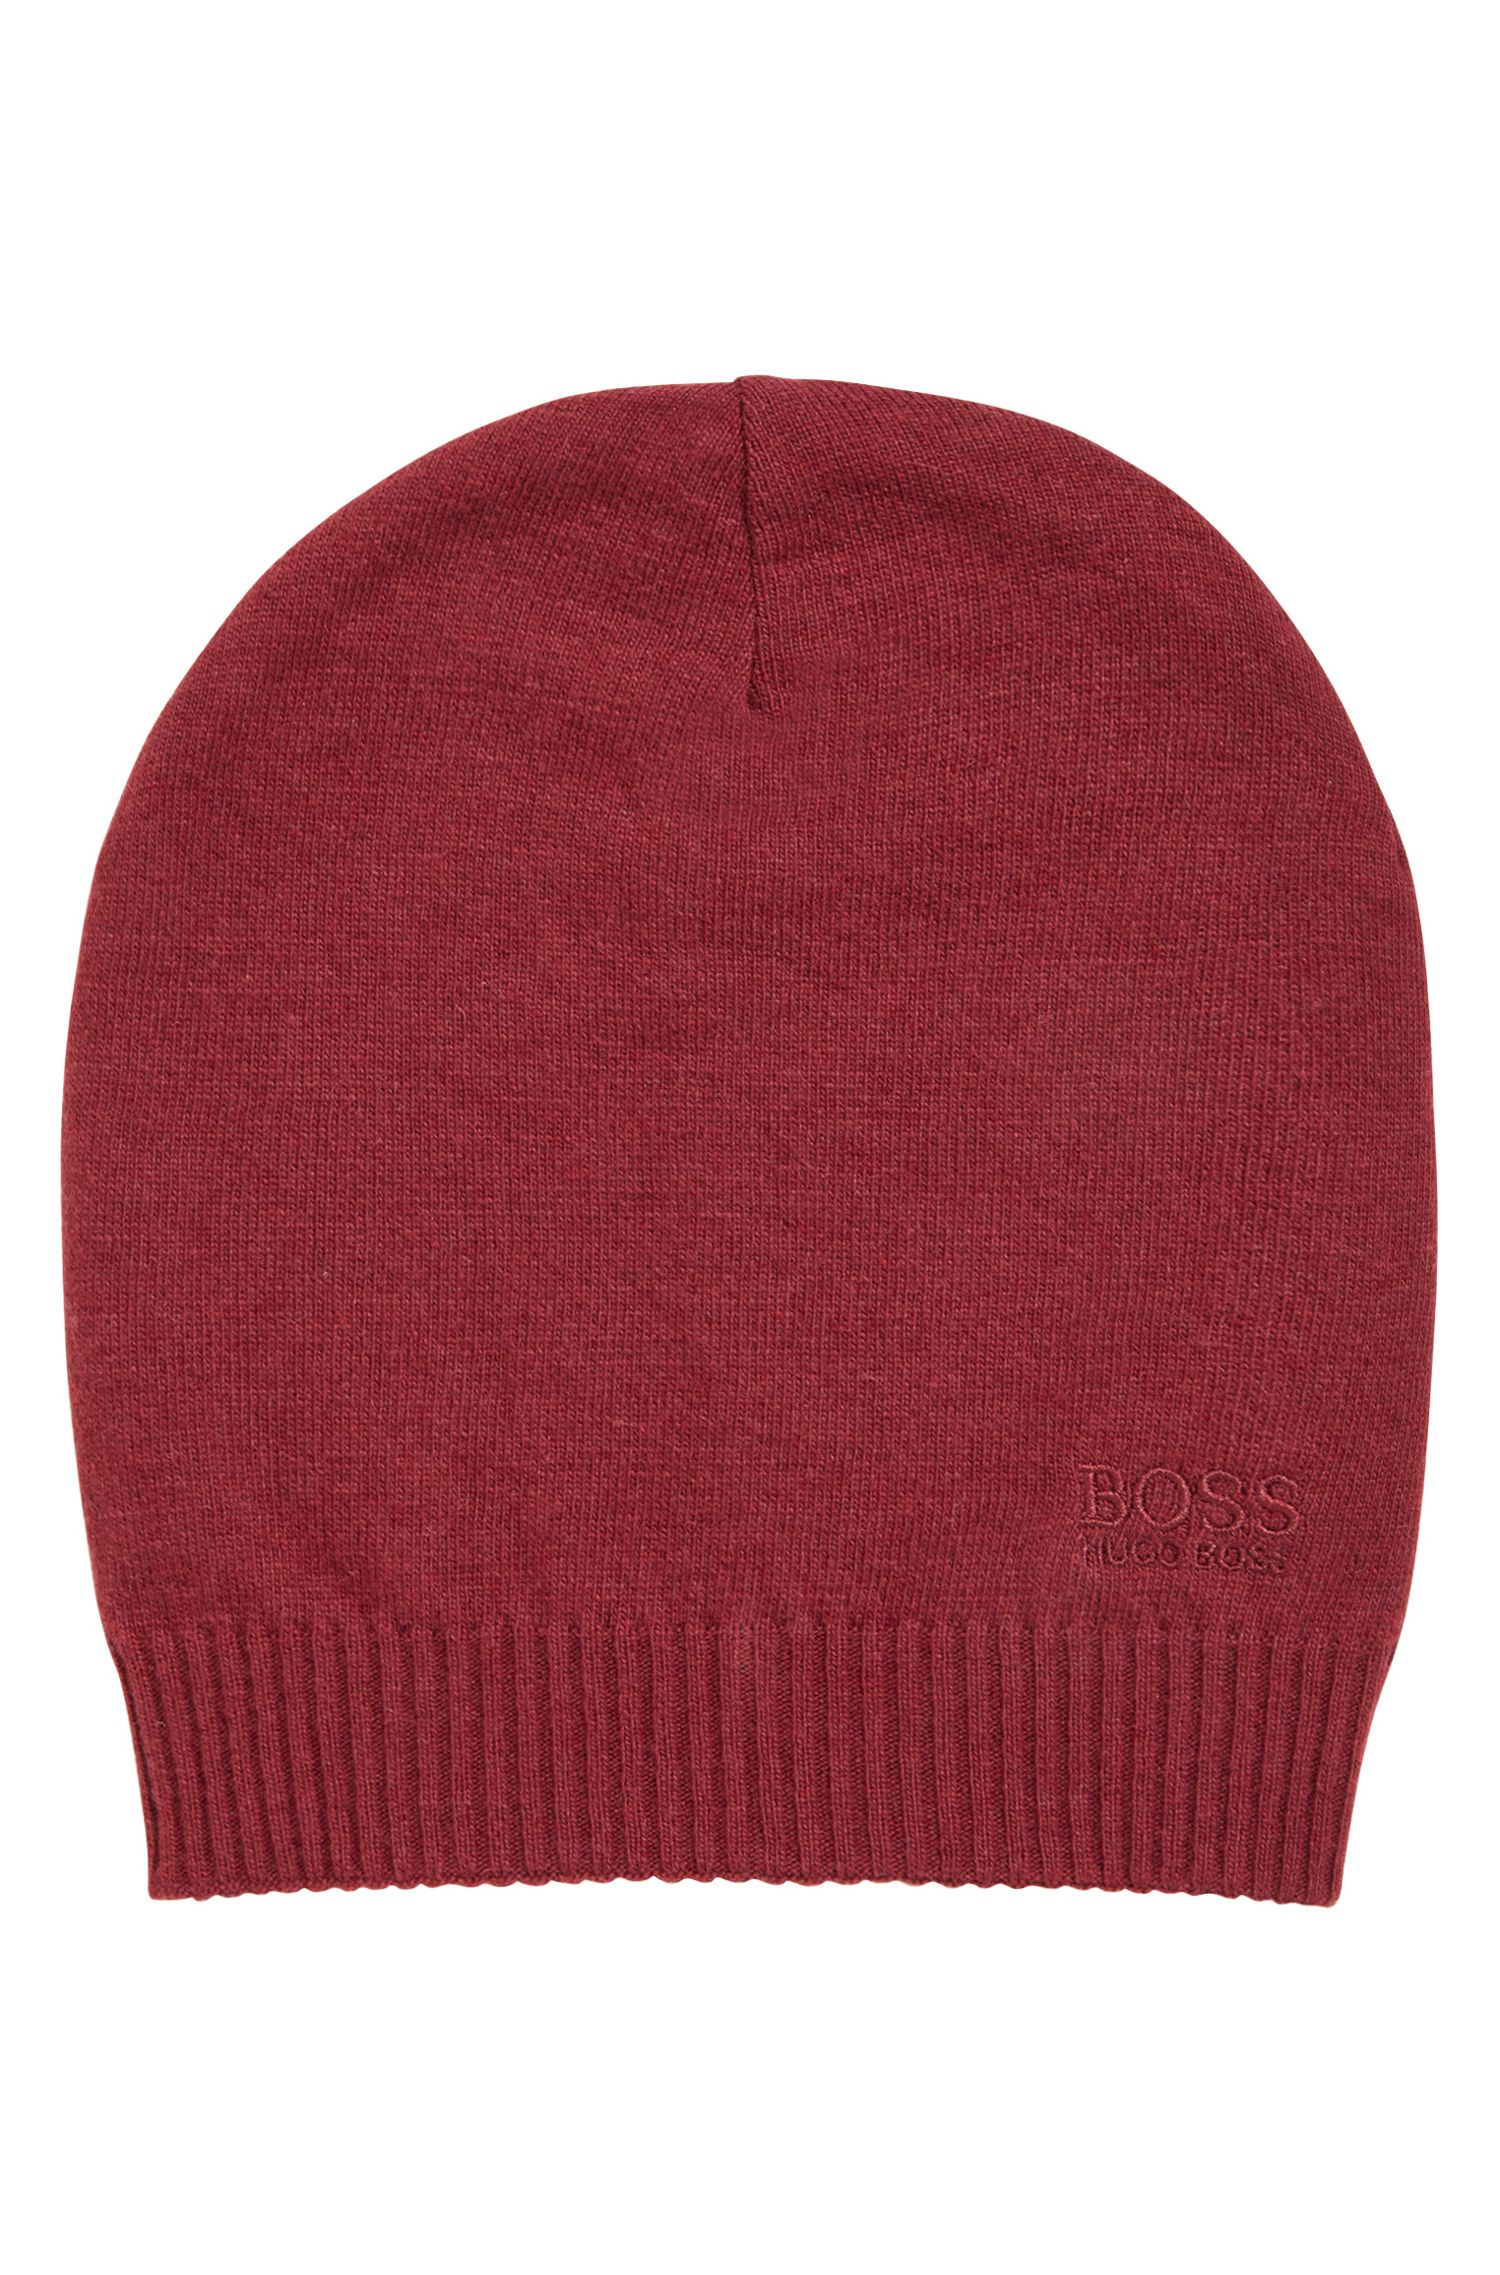 Knitted beanie hat with tonal logo, Dark Red